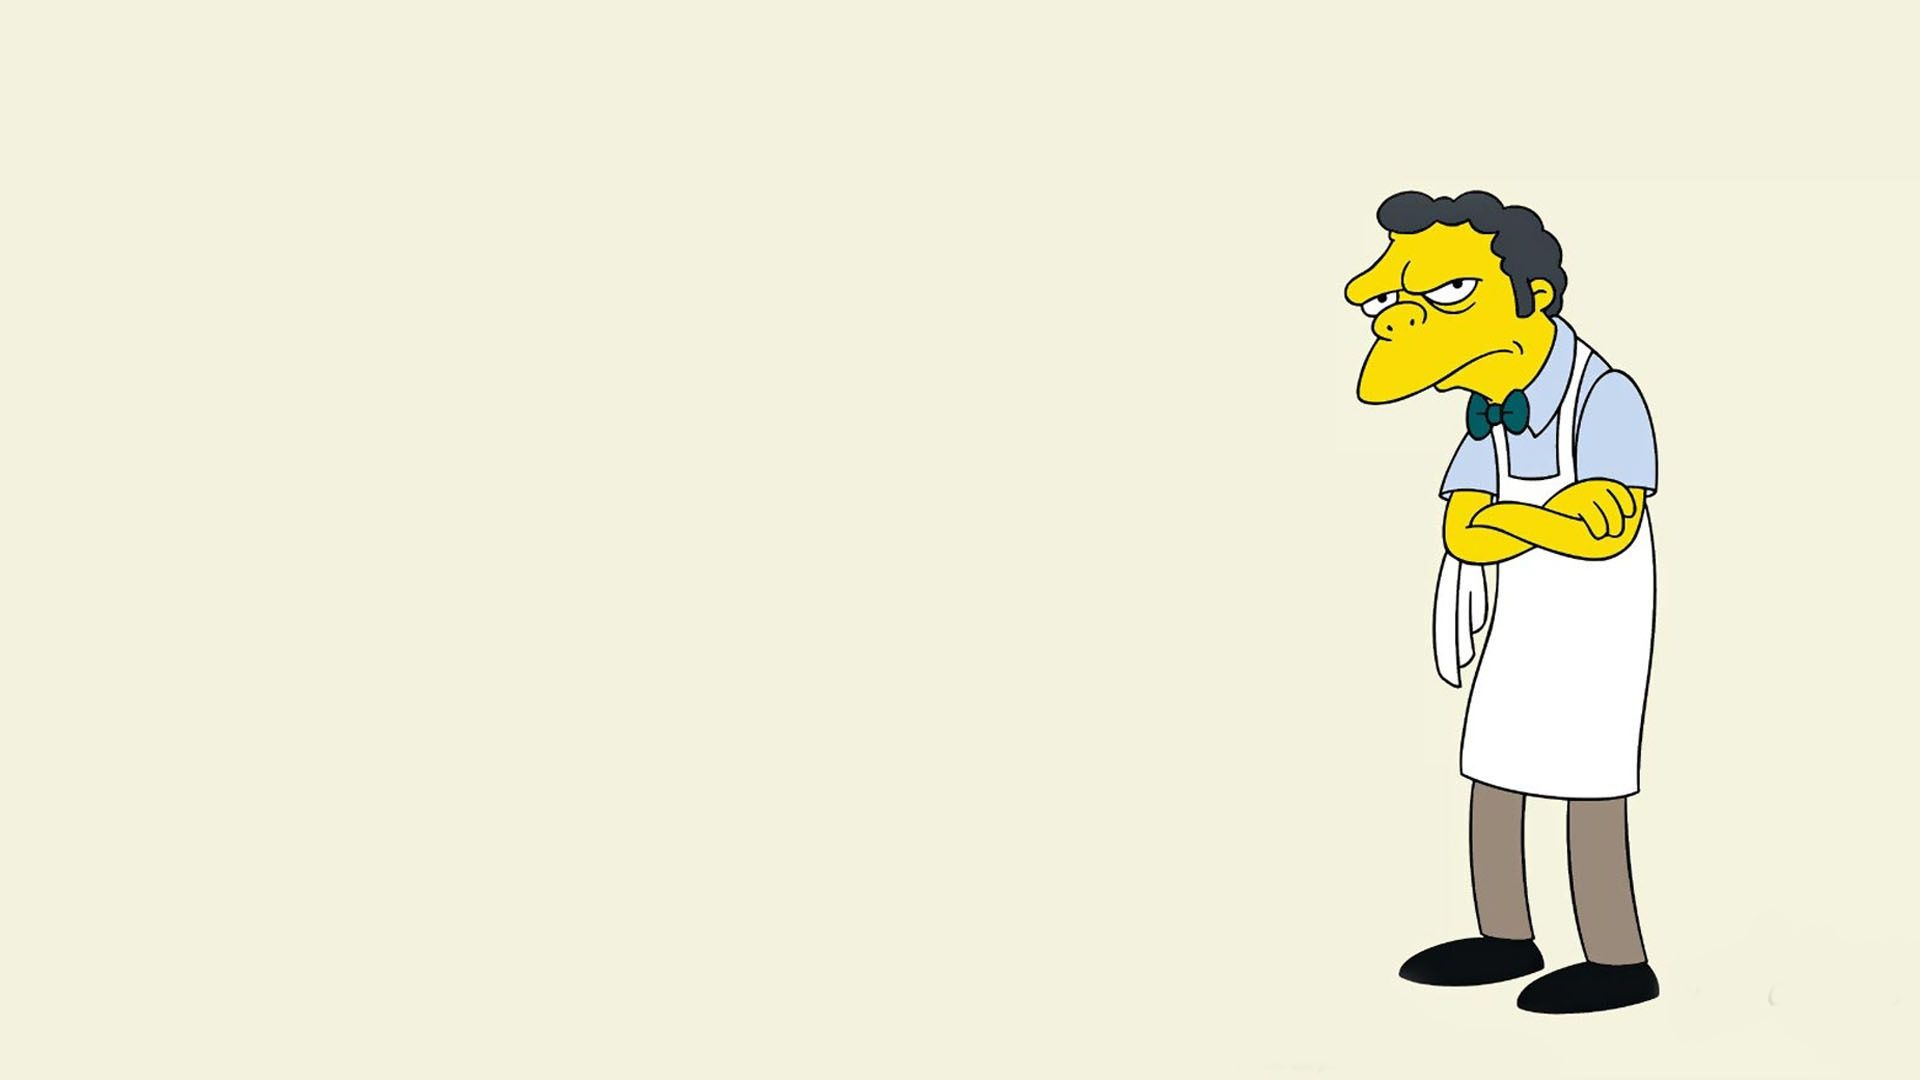 The simpsons Moe